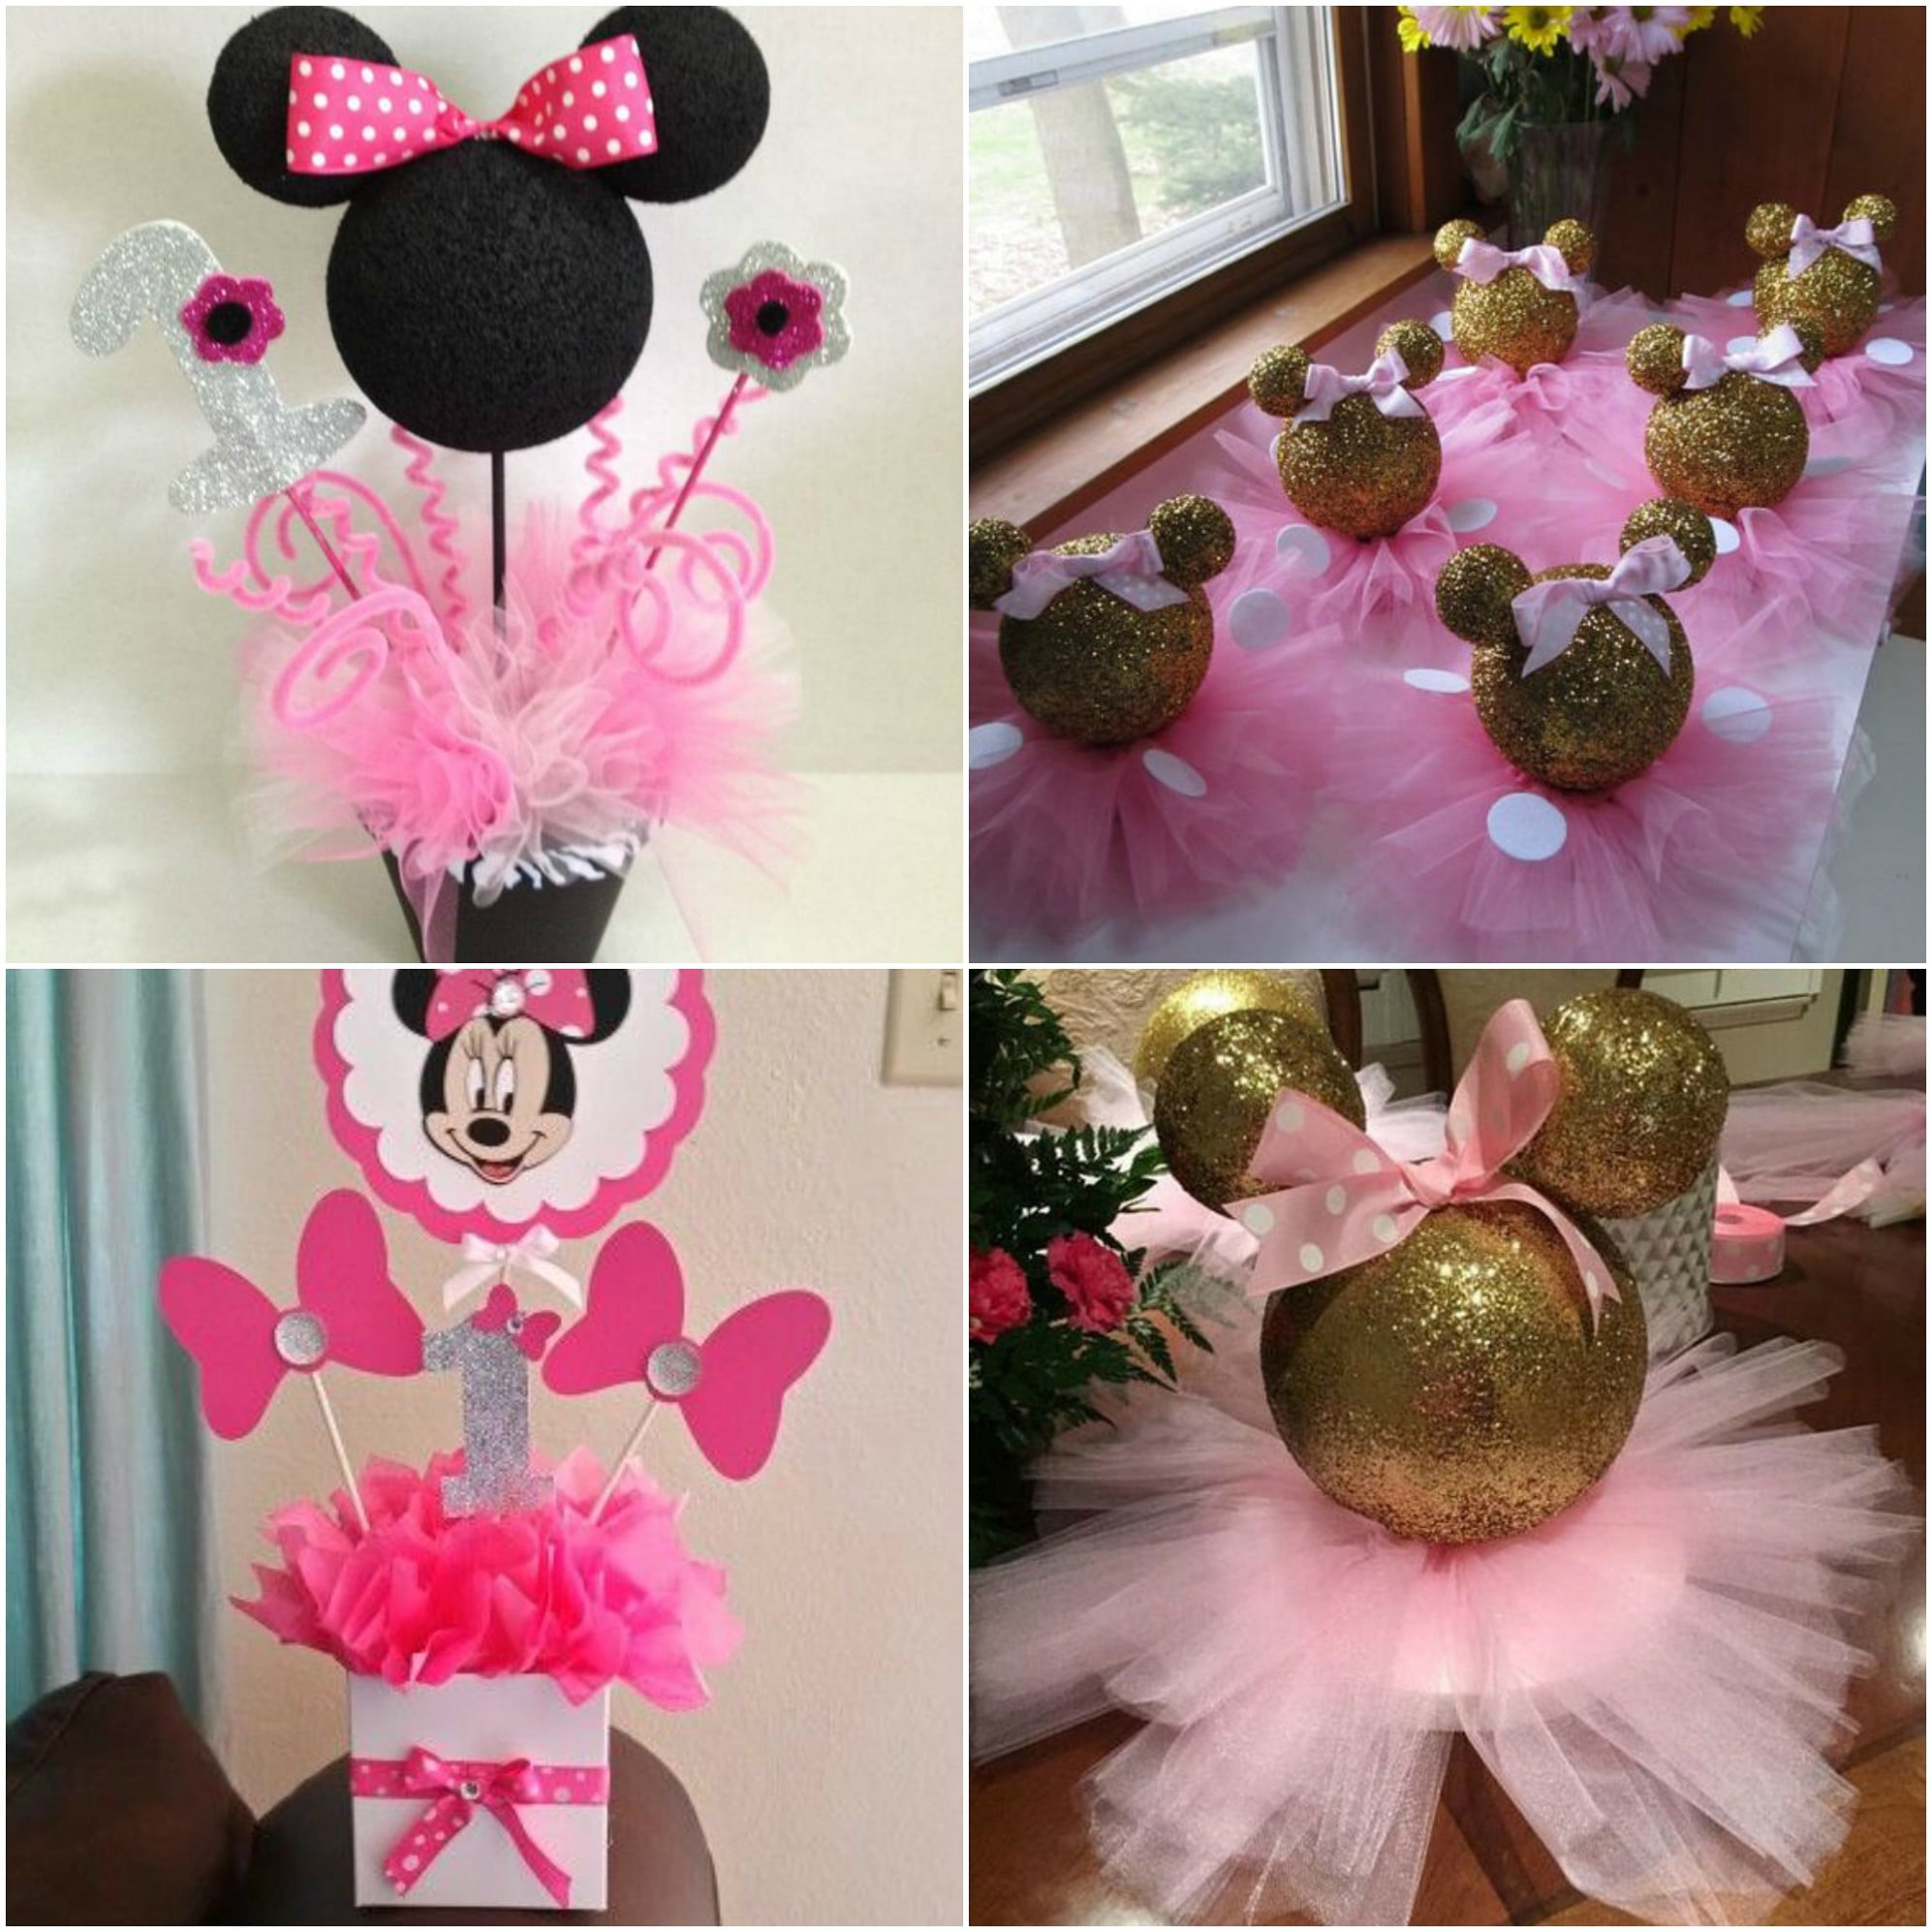 Fiesta de MINNIE MOUSE con ideas de decoraci³n originales 2017